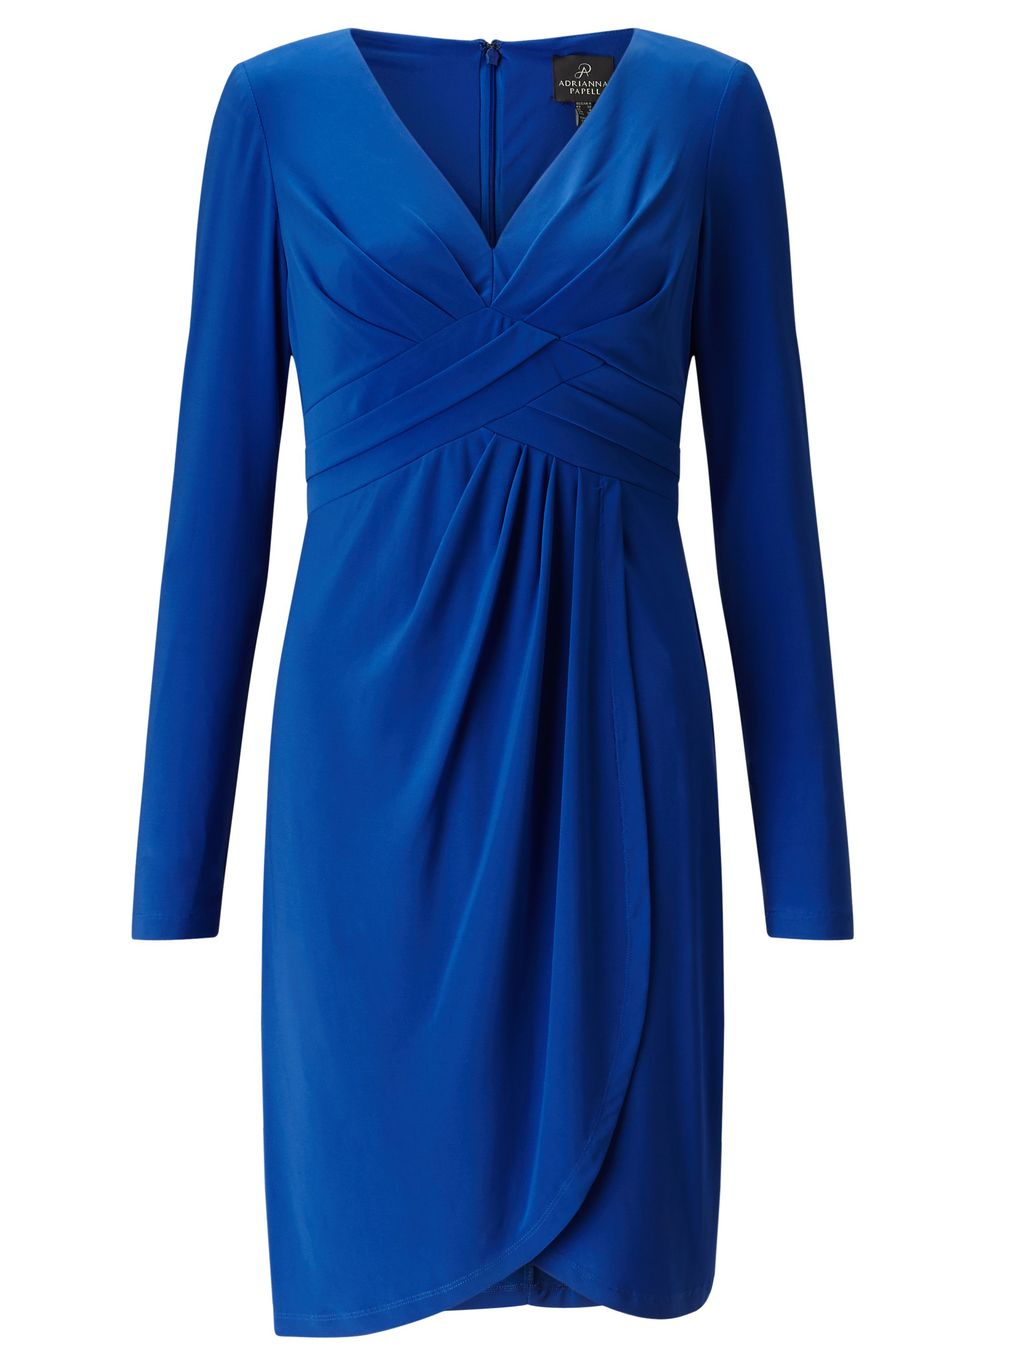 Front Draped Full Sleeved Sheath Dress., Blue - style: faux wrap/wrap; neckline: v-neck; pattern: plain; bust detail: subtle bust detail; predominant colour: royal blue; occasions: evening, occasion; length: on the knee; fit: body skimming; fibres: polyester/polyamide - stretch; hip detail: adds bulk at the hips; sleeve length: long sleeve; sleeve style: standard; texture group: jersey - clingy; pattern type: fabric; season: s/s 2016; wardrobe: event